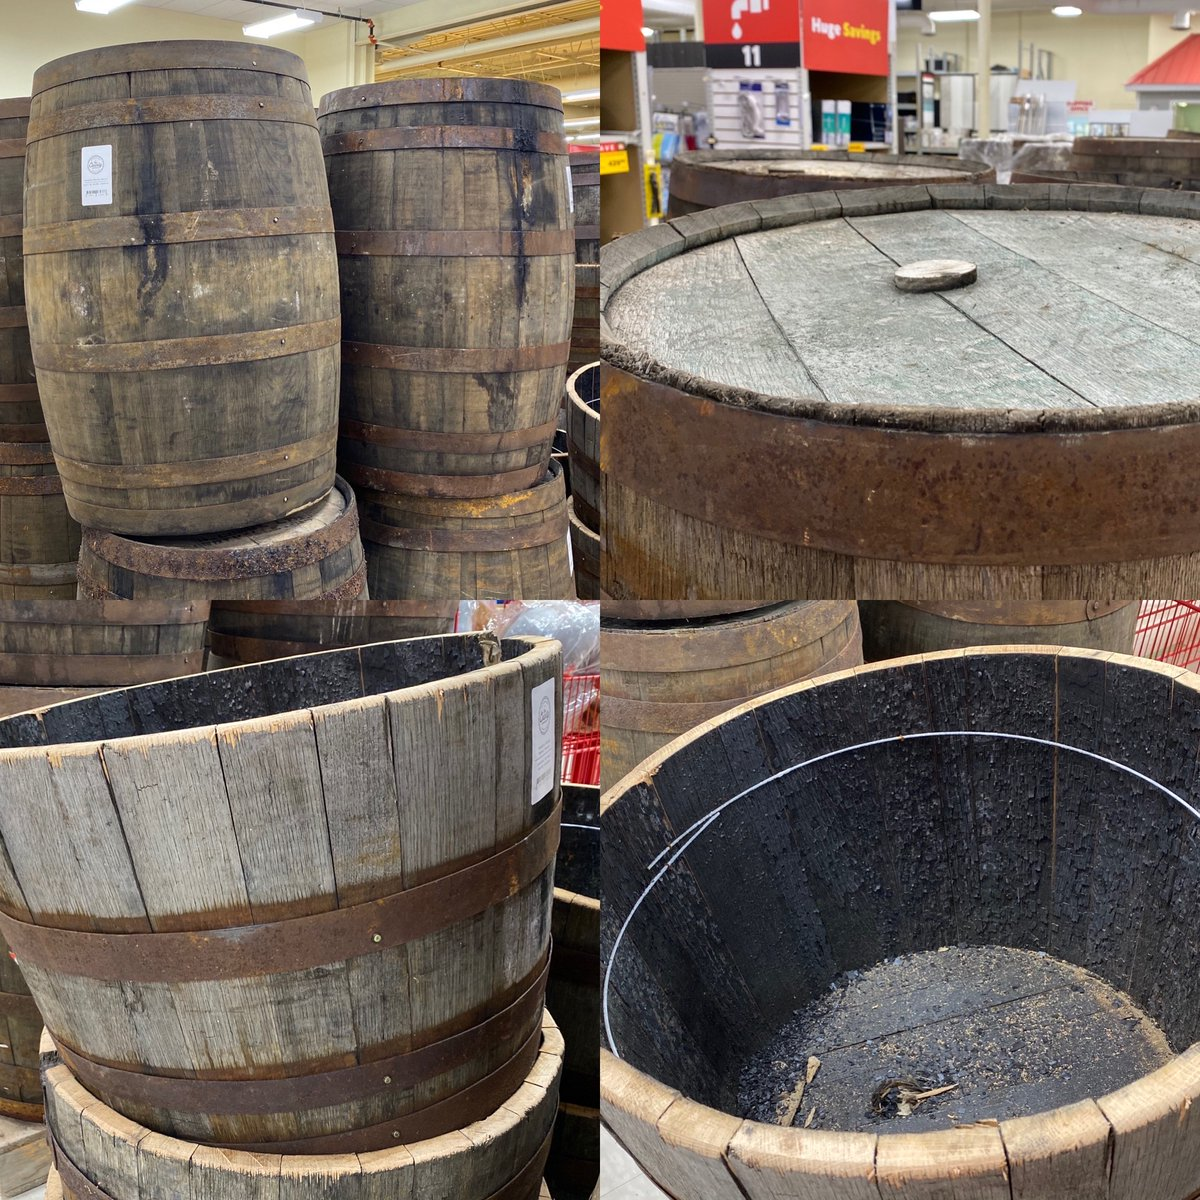 Canadian Whisky Barrels At #LowerSackville #Dartmouth and #Enfield stores. Full size: $124.99 (plus tax) Planter: $74.99 (plus tax) #Payzants #HomeHardware #WhiskyBarrels https://t.co/LyNlHKSGFi